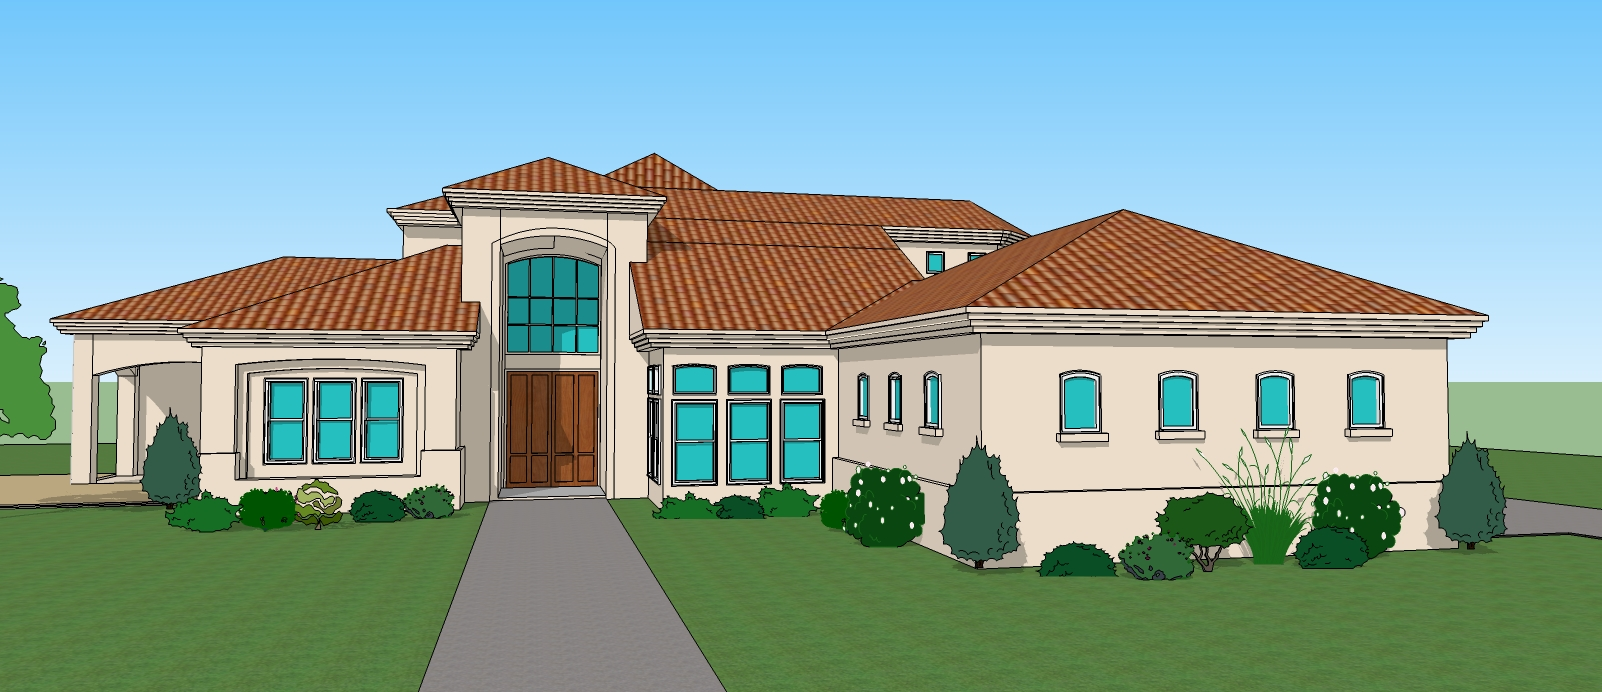 Simple 3d 3 bedroom house plans and 3d view house drawings for Two story house drawing